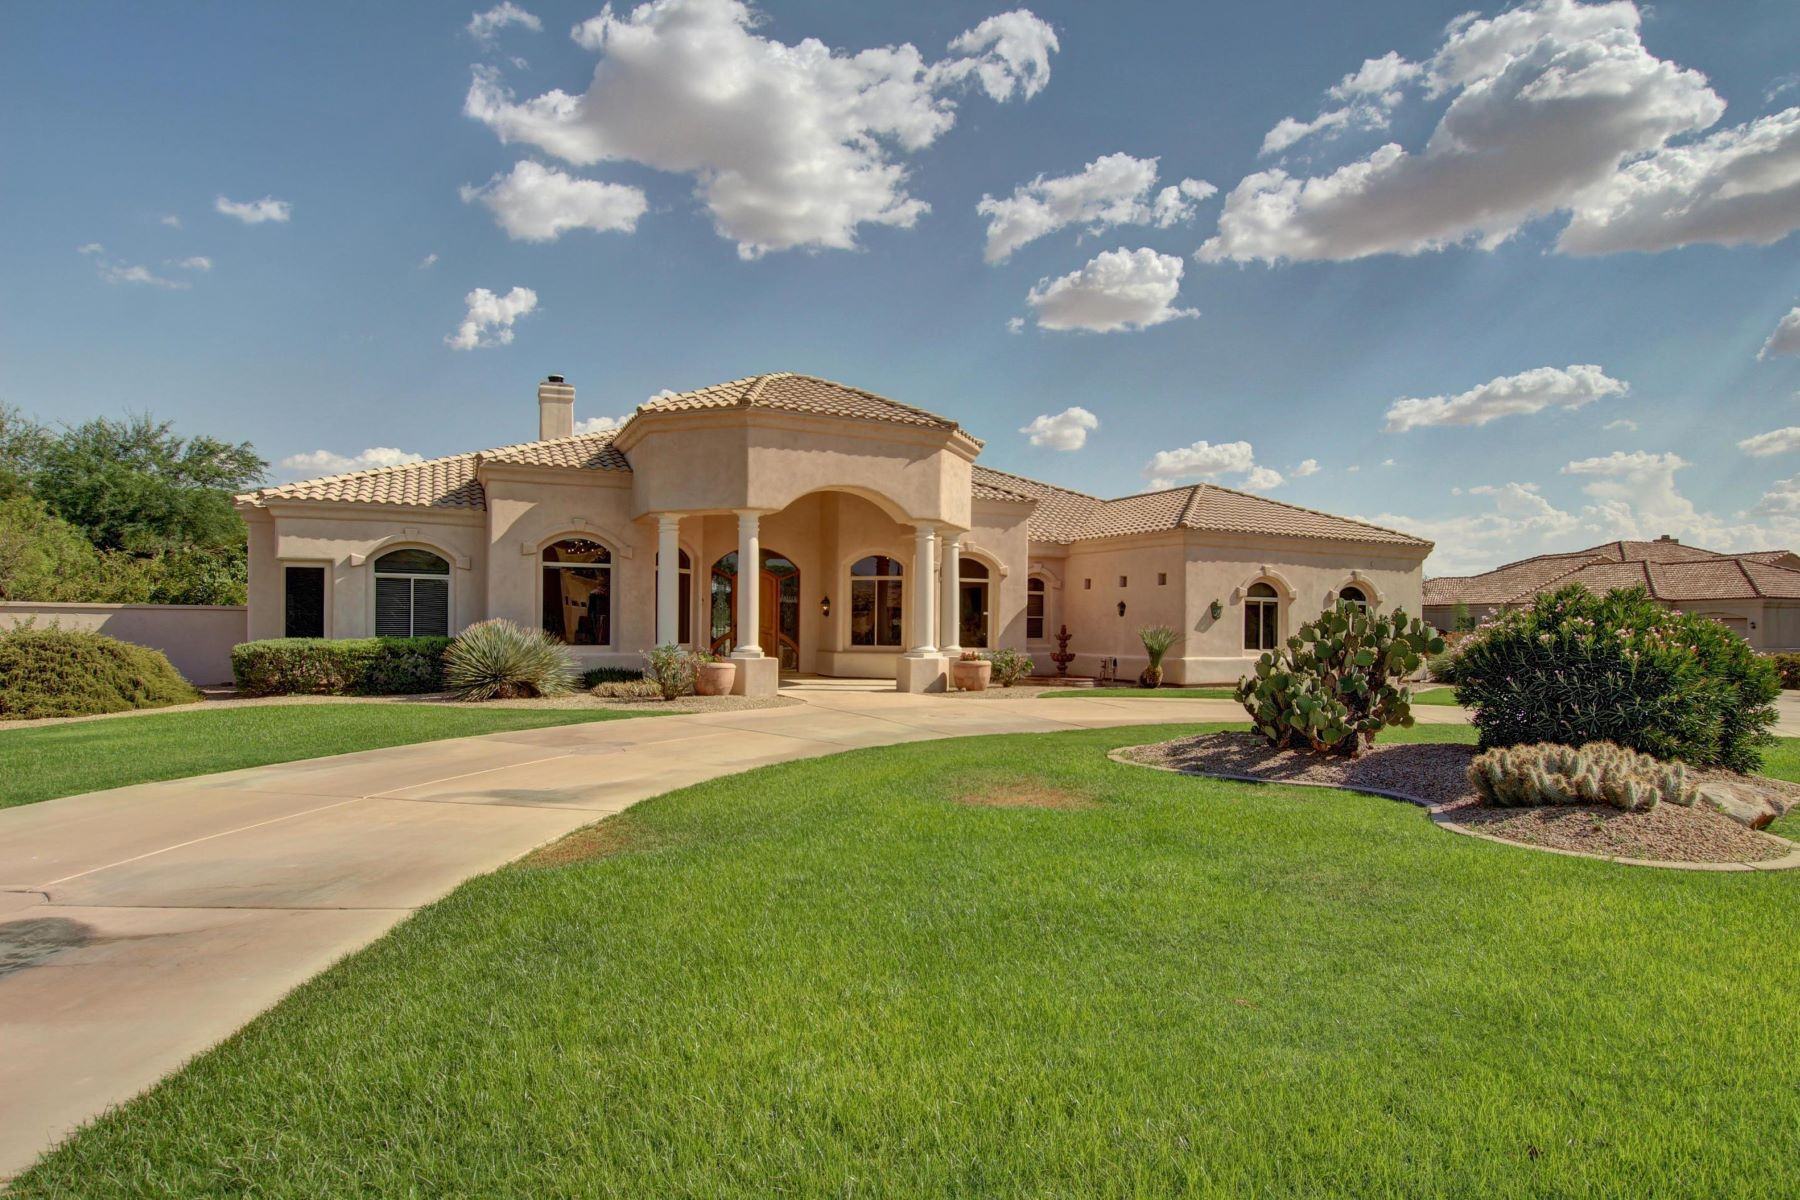 Maison unifamiliale pour l Vente à Ideal single level ​custom home in ​desirable Circle G. 2559 E Virgo Pl Chandler, Arizona 85249 États-Unis